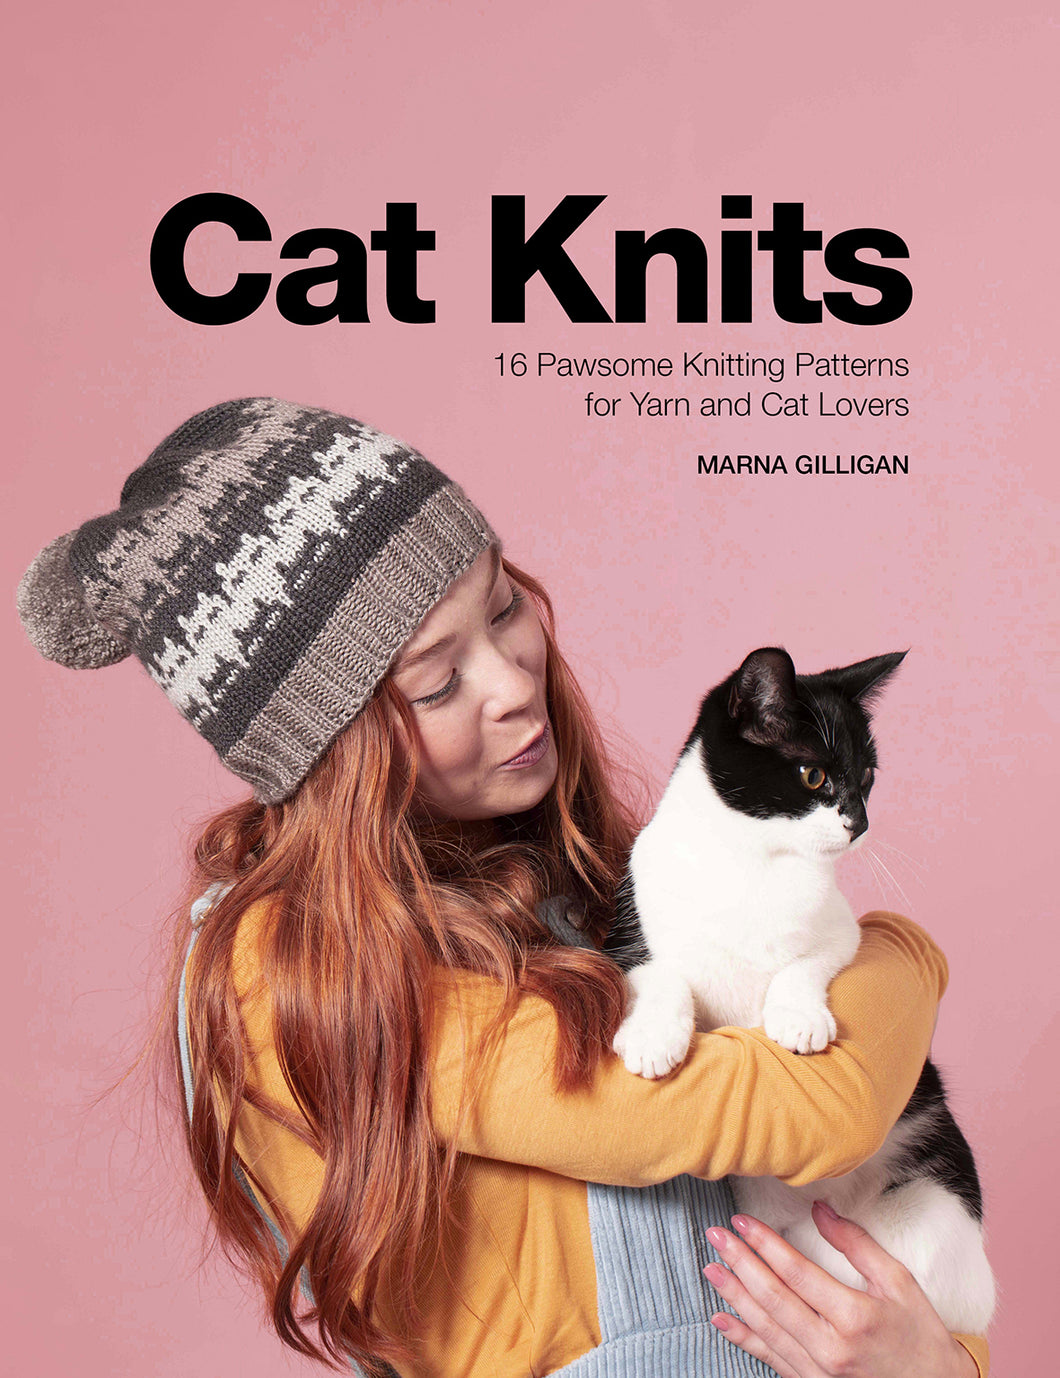 Cat Knits by Maria Gilligan